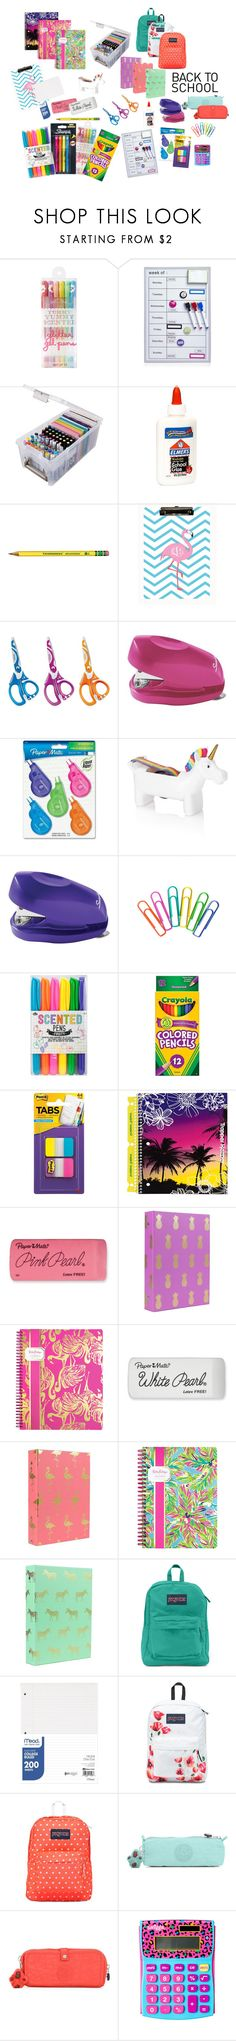 Back to School Supplies by ArgentineanDoll on Polyvore featuring JanSport, Lilly Pulitzer, ArtBin, Forever 21, Mead, 686, Kipling, Paper Mate, Swingline and NPW